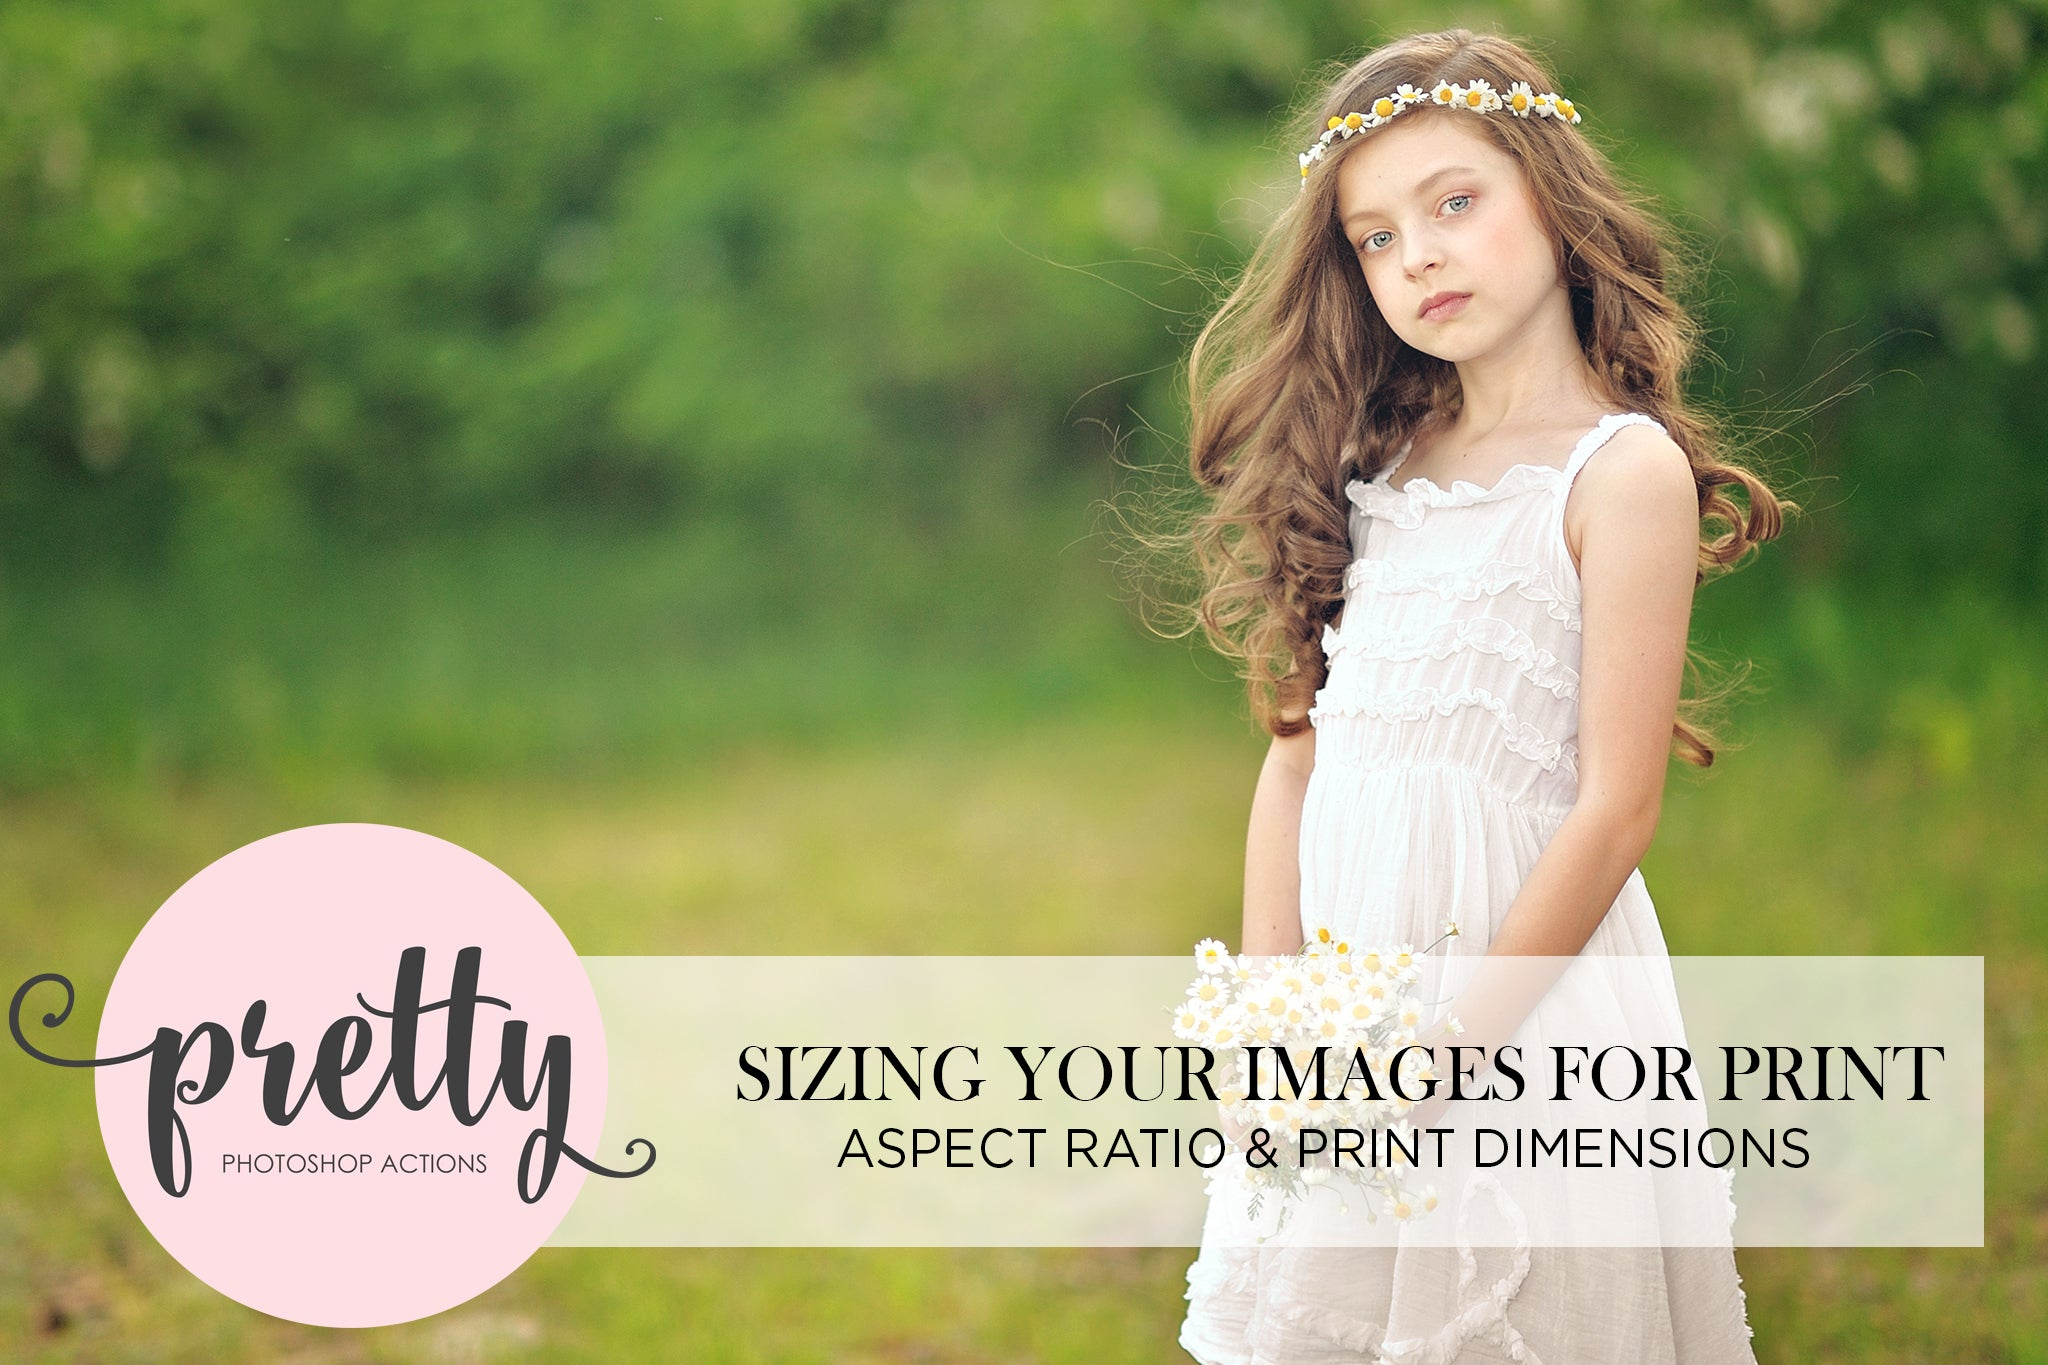 sizing your images for print